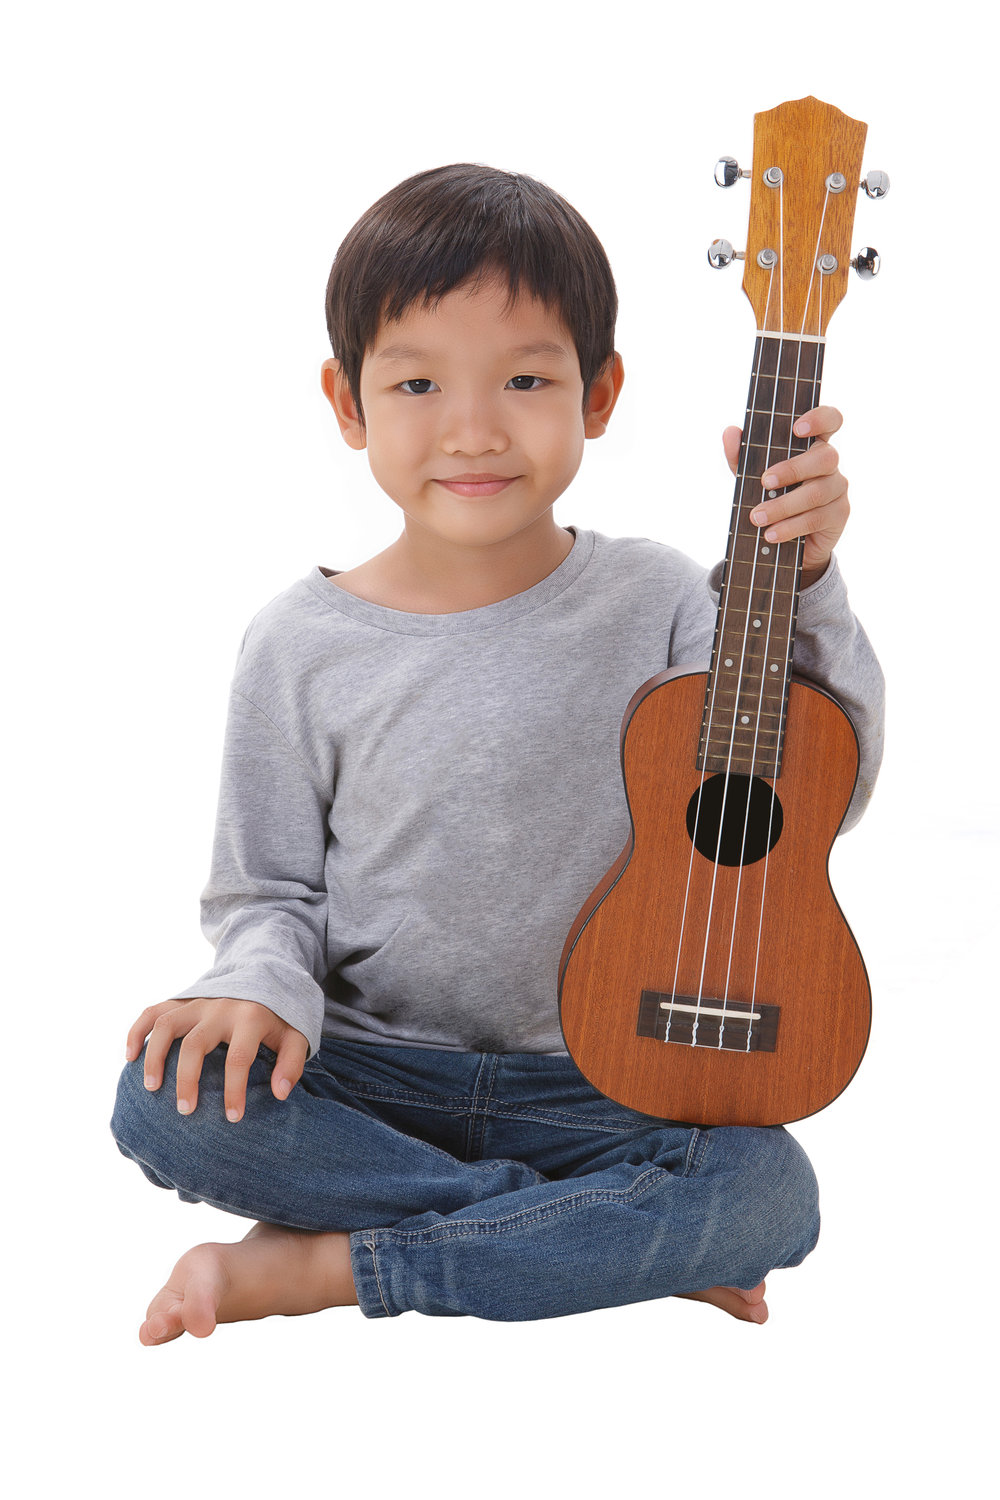 Youth Uke - The uke is a perfect instrument for smaller hands. The strings also have less tension than a typical guitar, requiring less pressure and making it easier to get the right tone.Students experience immediate success in being able to play recognizable tunes, which boosts their confidence and inspiring further exploration.Our blended teaching methodology provides a foundation for learning to play any string instrument as well as essential music theory concepts used in school music classes, band, orchestra, or any musical endeavor. Musical games and other fun activities to make learning fun and effective.